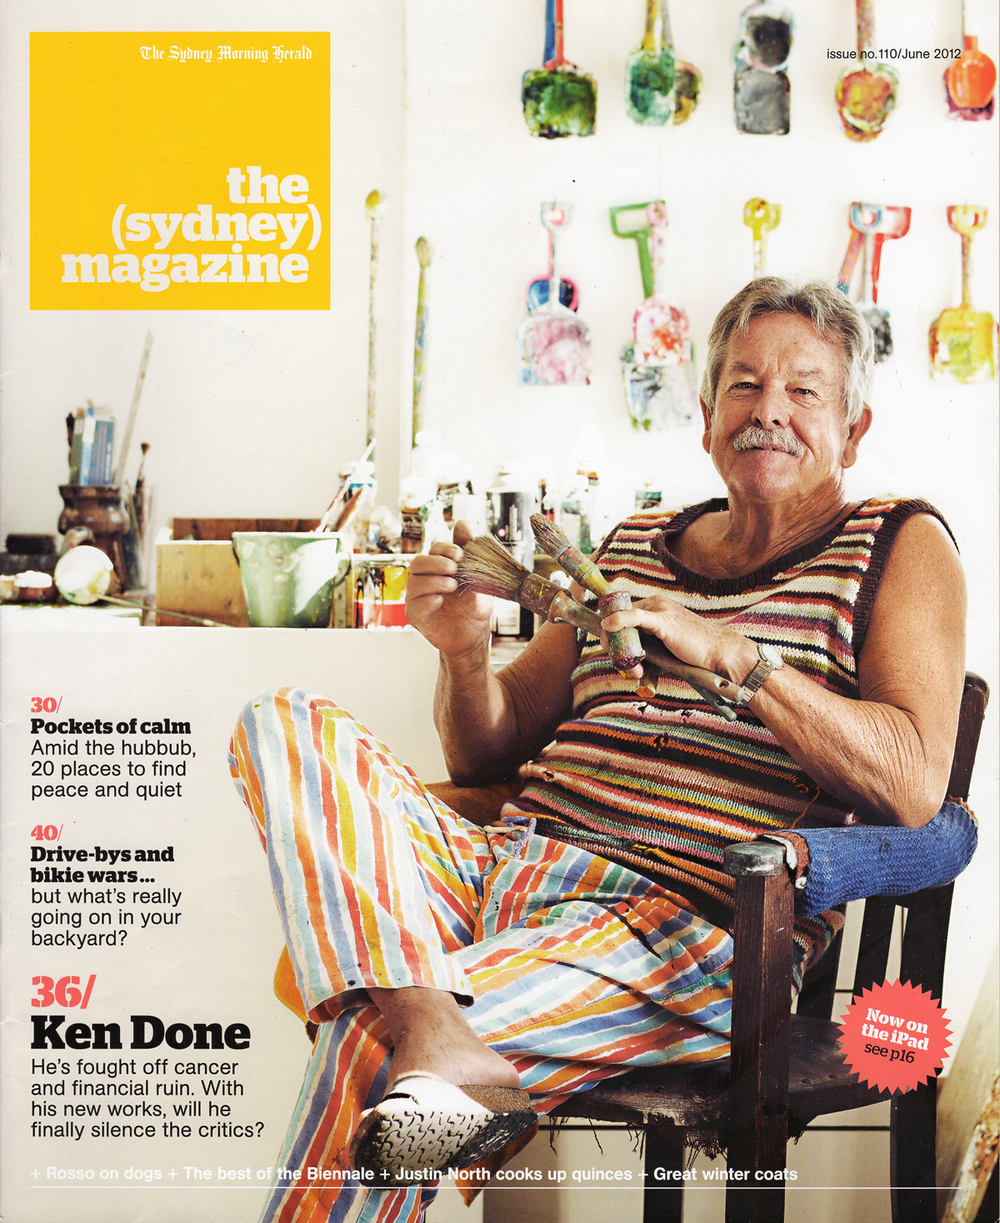 the (sydney) magazine June 2012 cover (Vaucluse) web.jpg